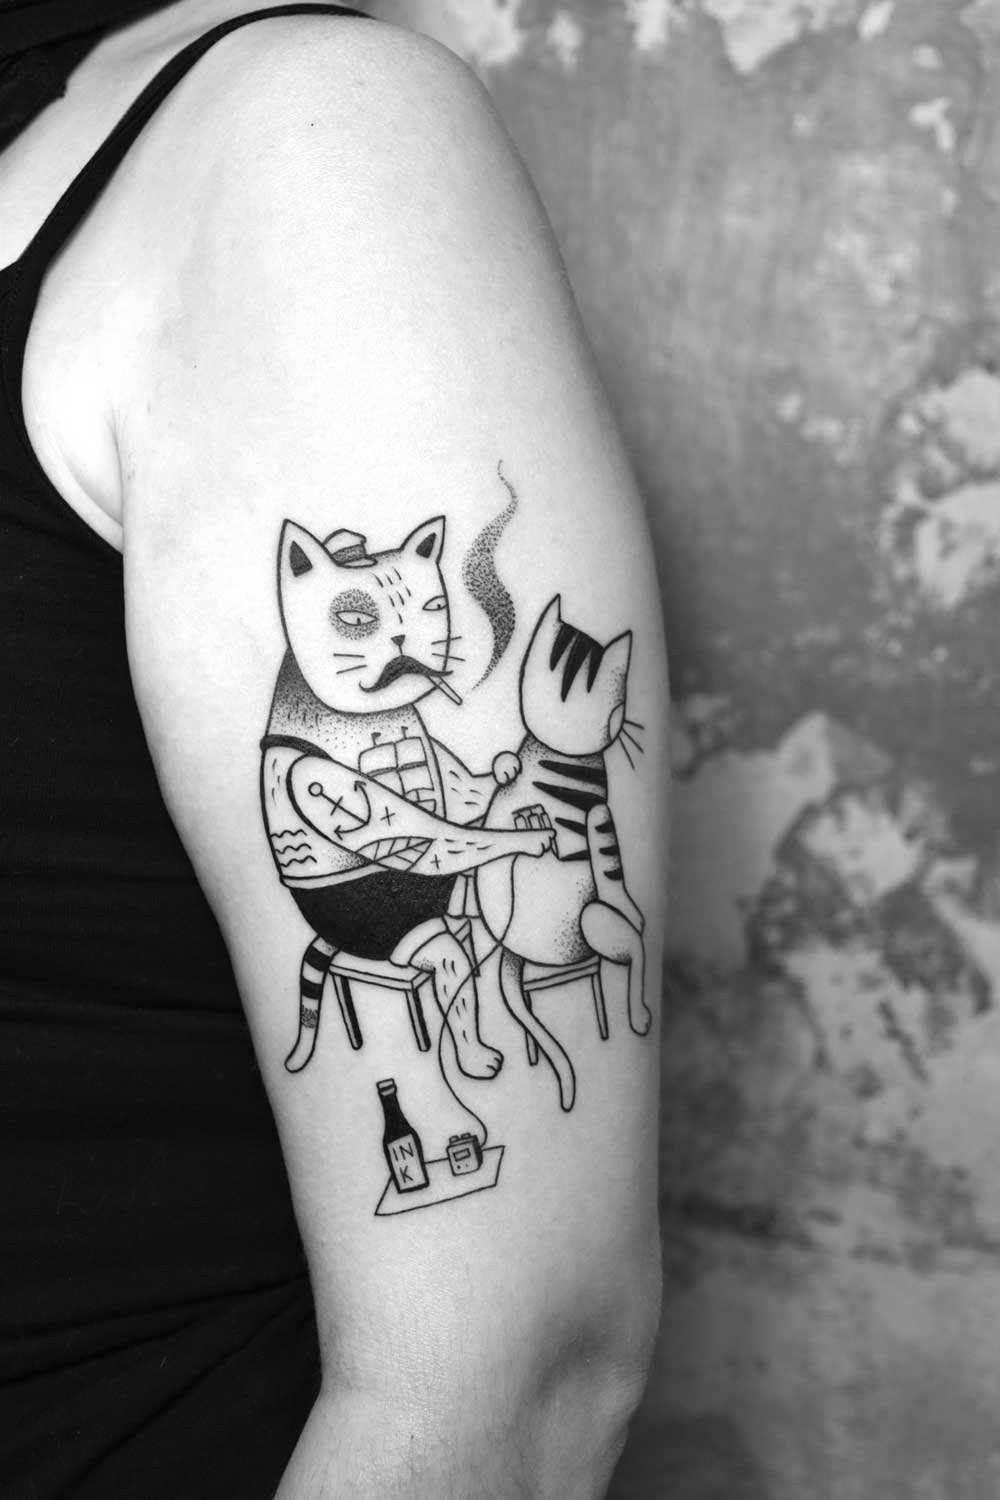 Tattooing Cat by Miriam Frank